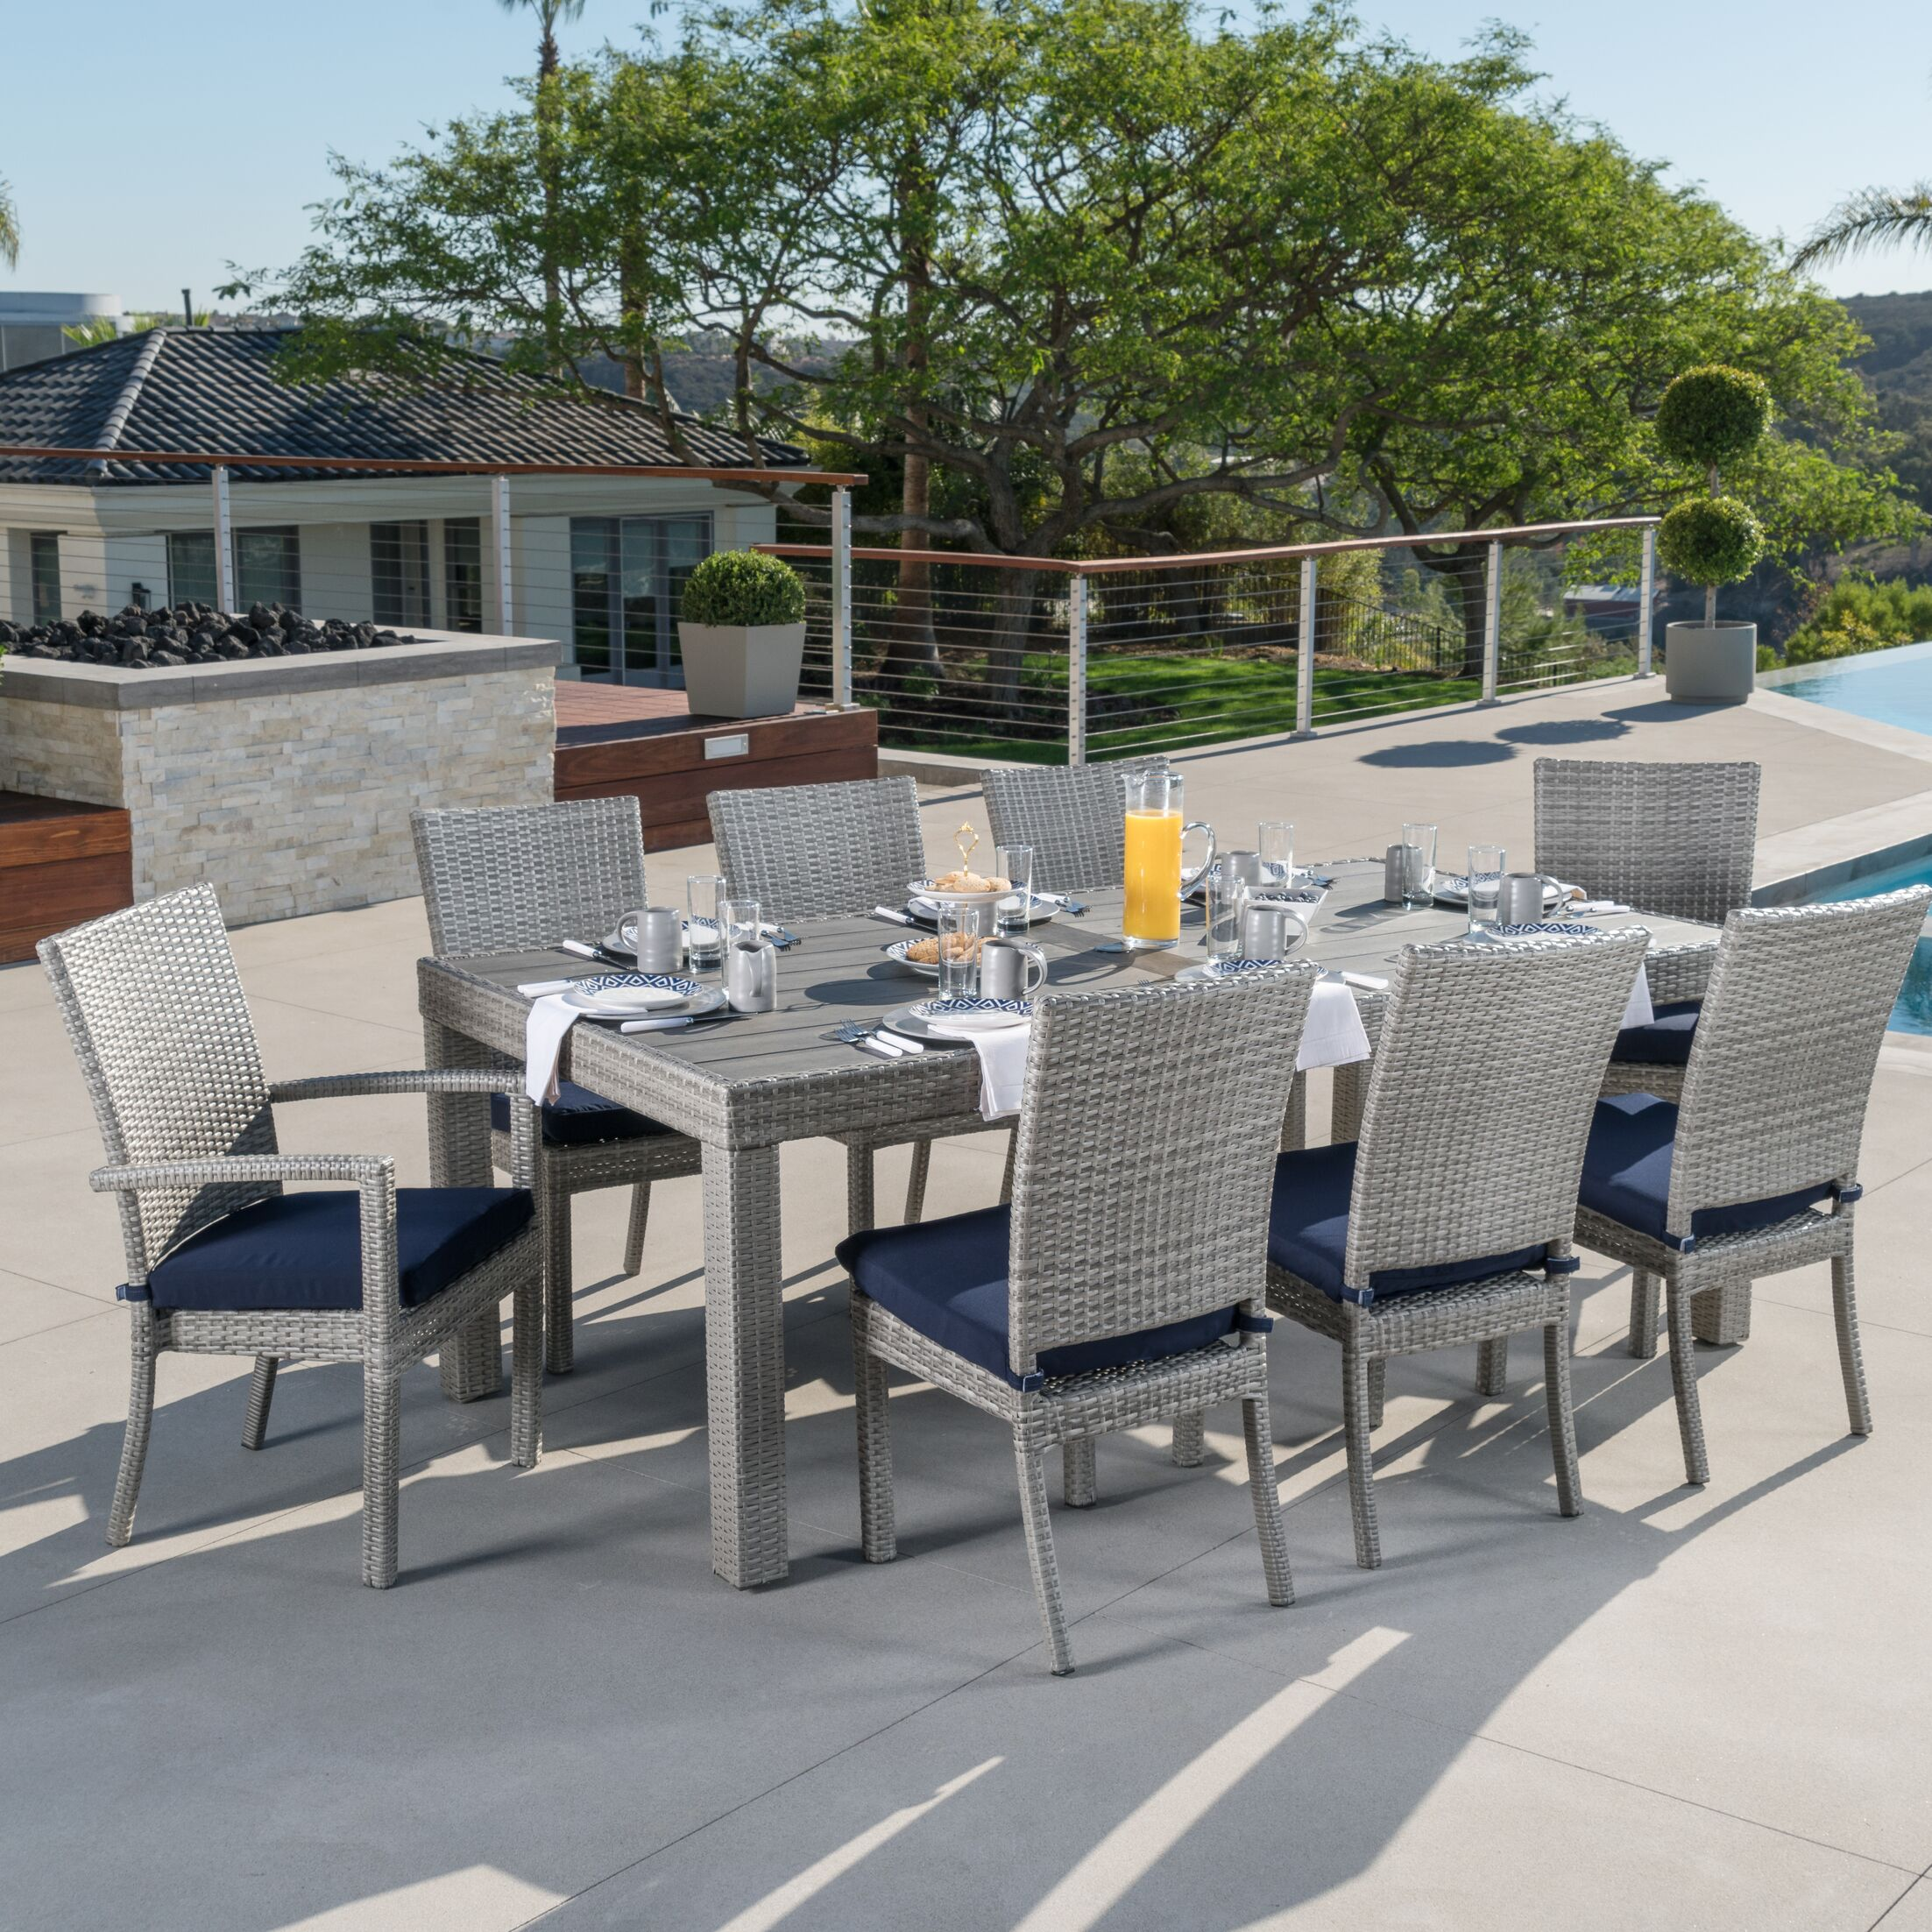 Castelli 9 Piece Sunbrella Dining Set with Cushions Color: Navy